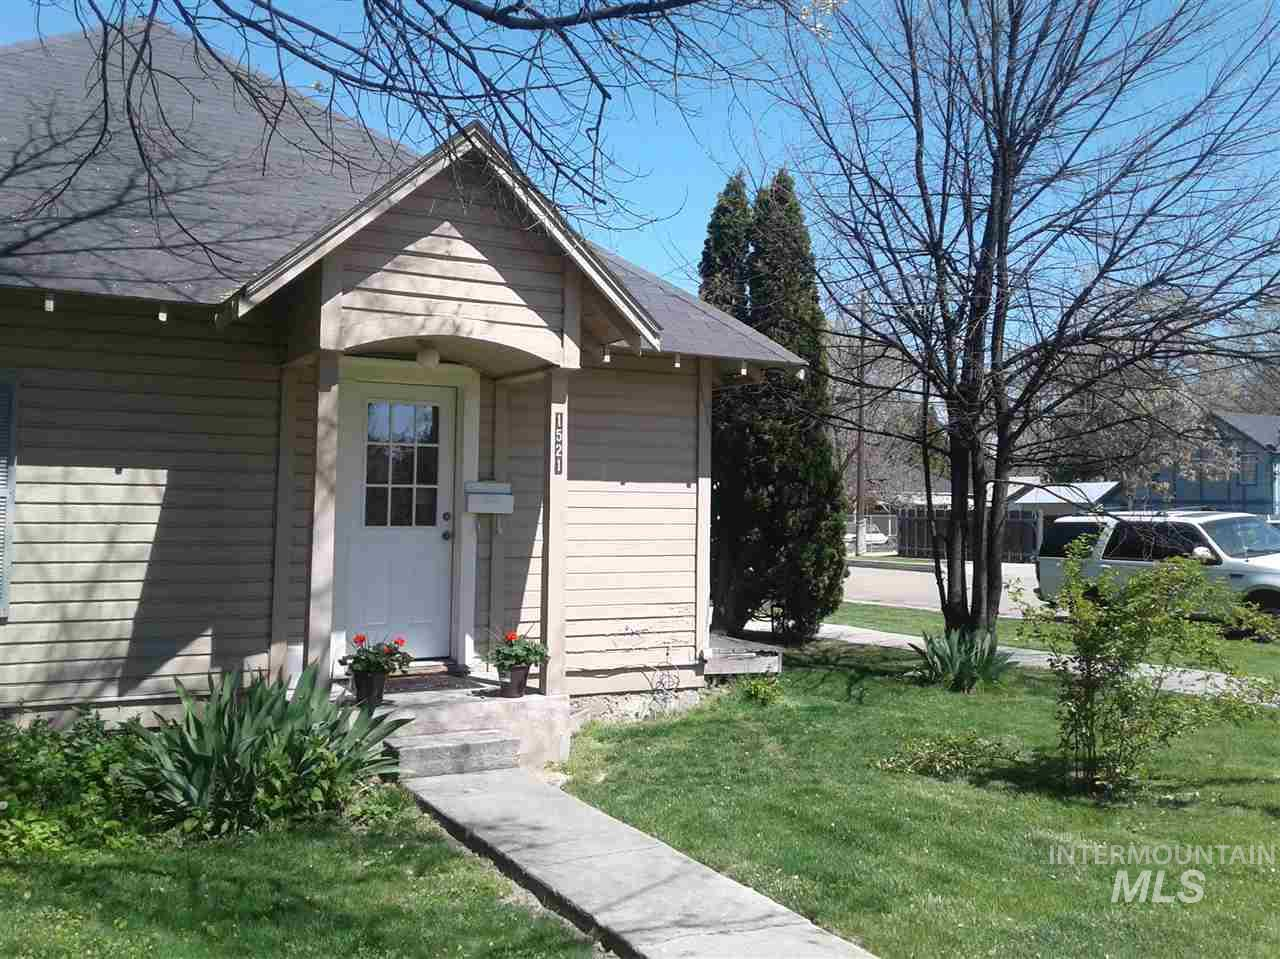 1521 Blaine St, Caldwell, Idaho 83605, 1 Bedroom, 1 Bathroom, Residential Income For Sale, Price $300,000, 98727075